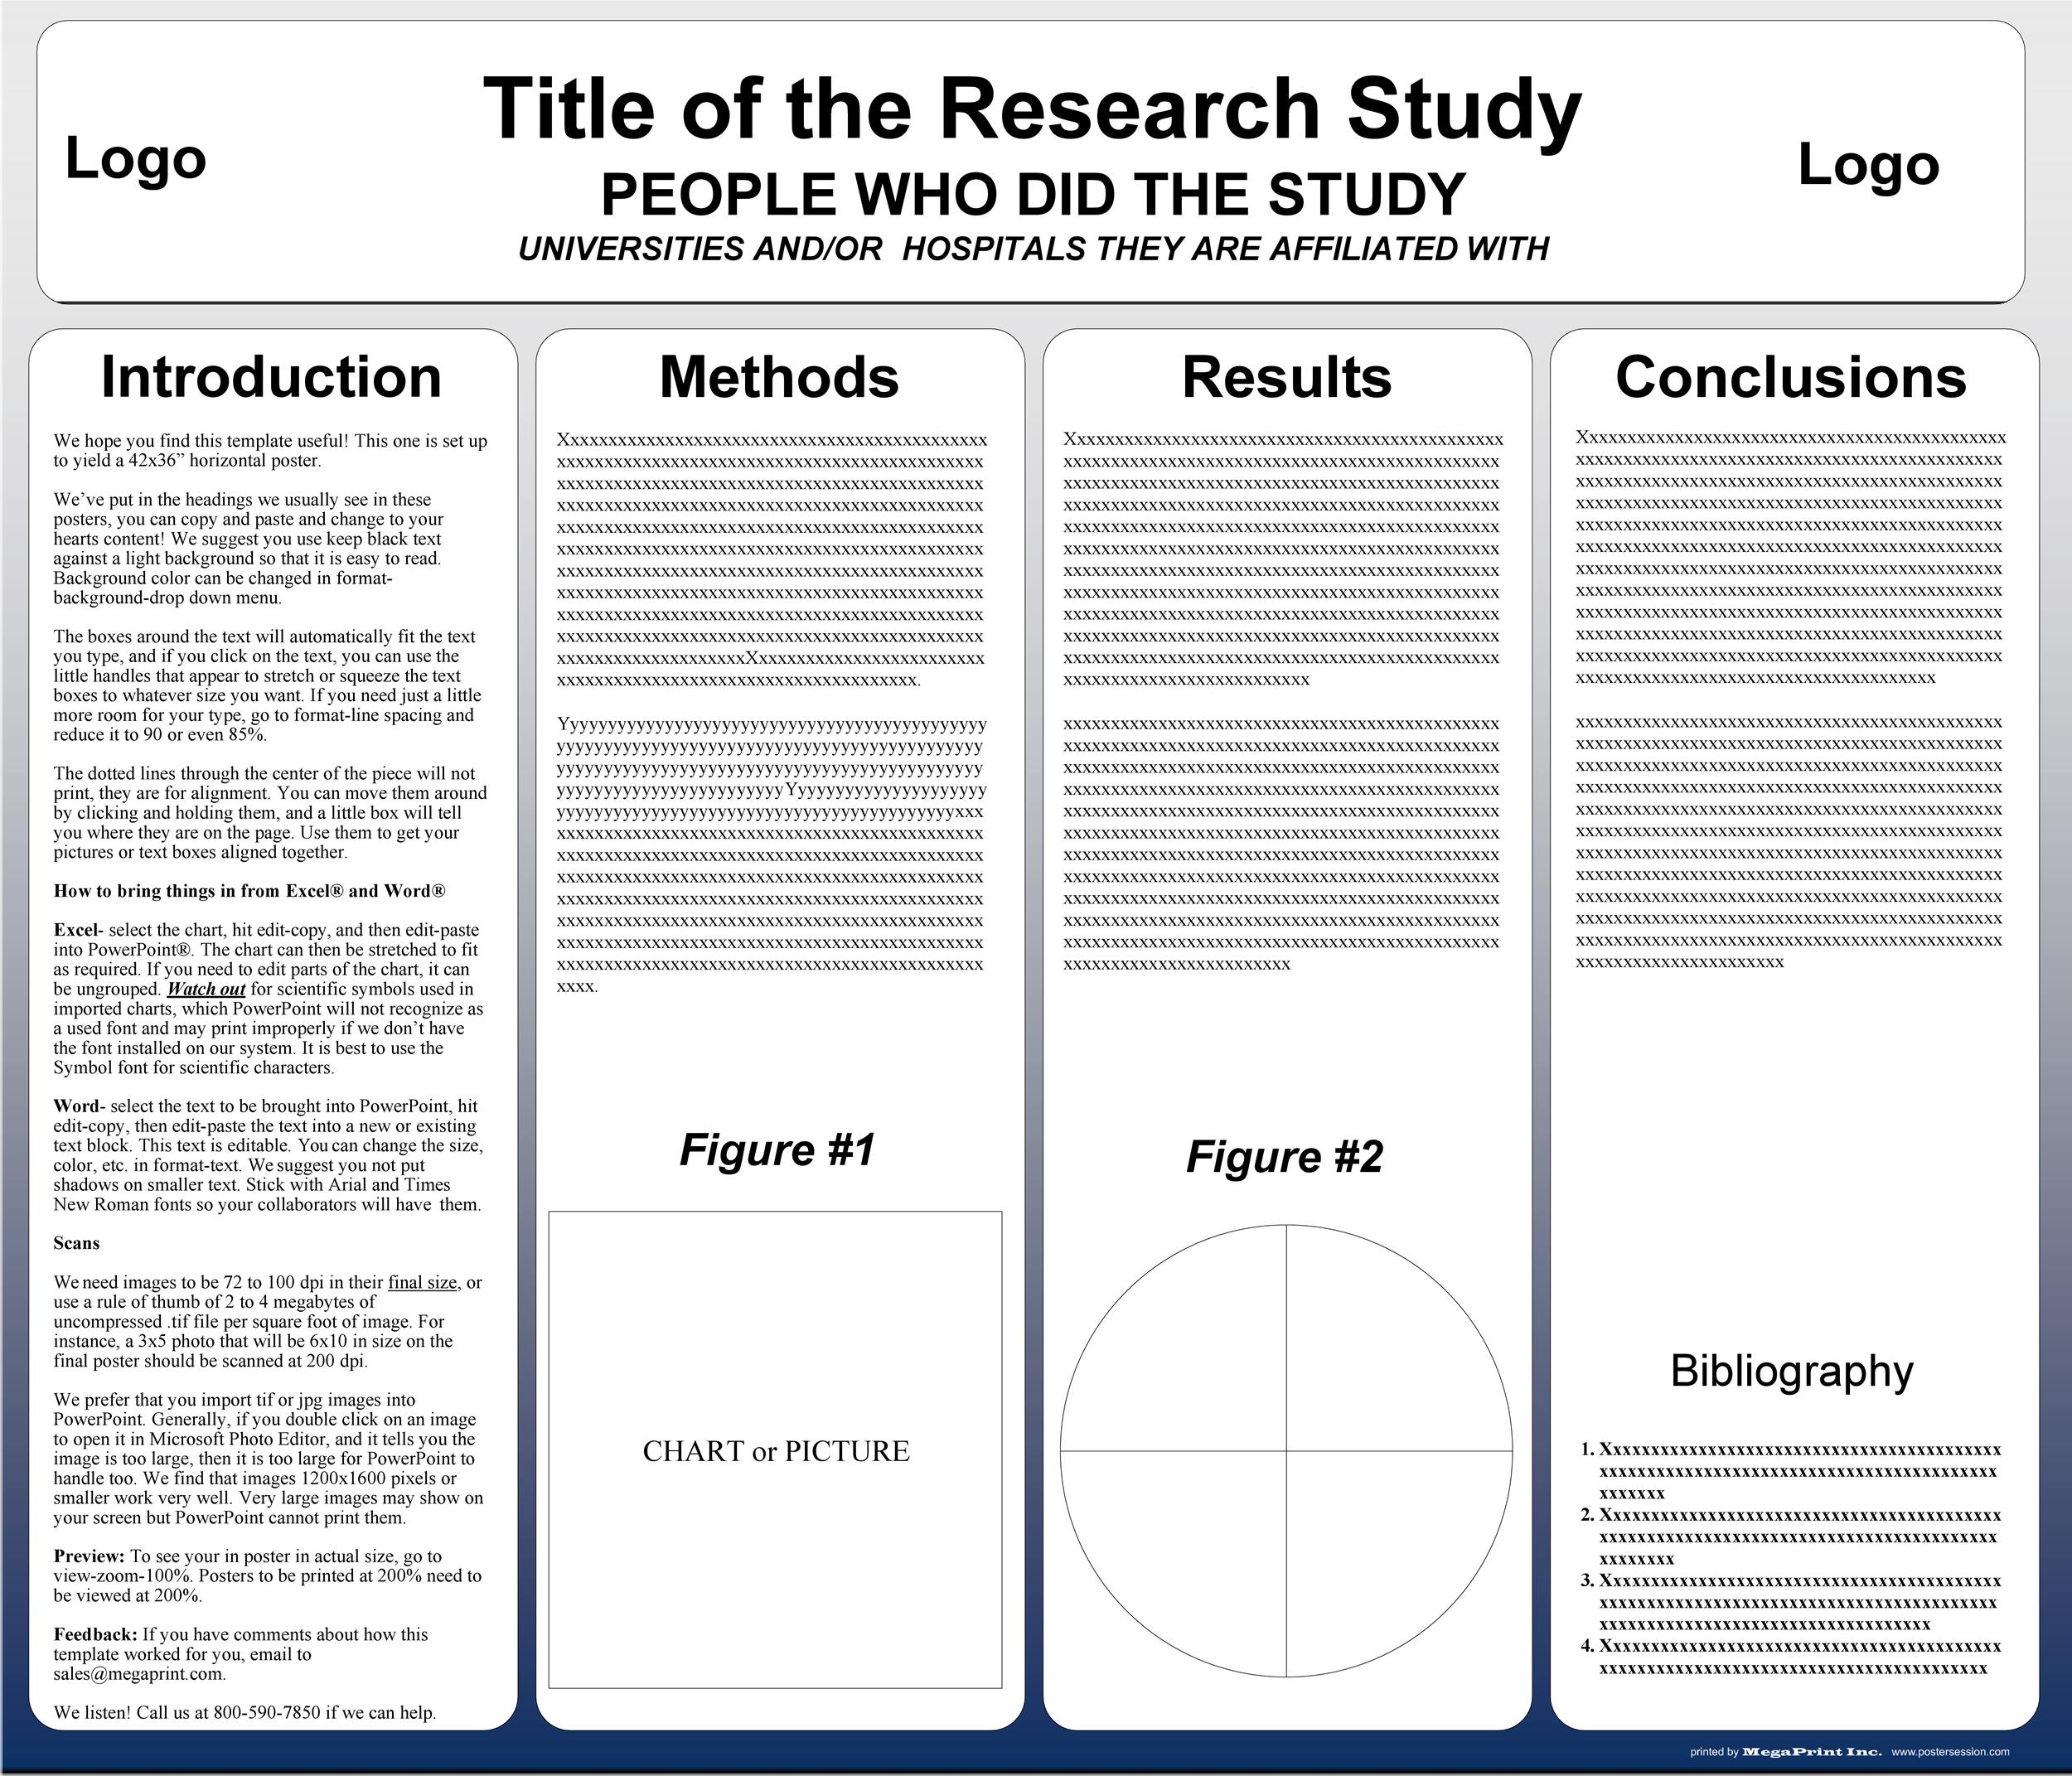 Free research poster template 12